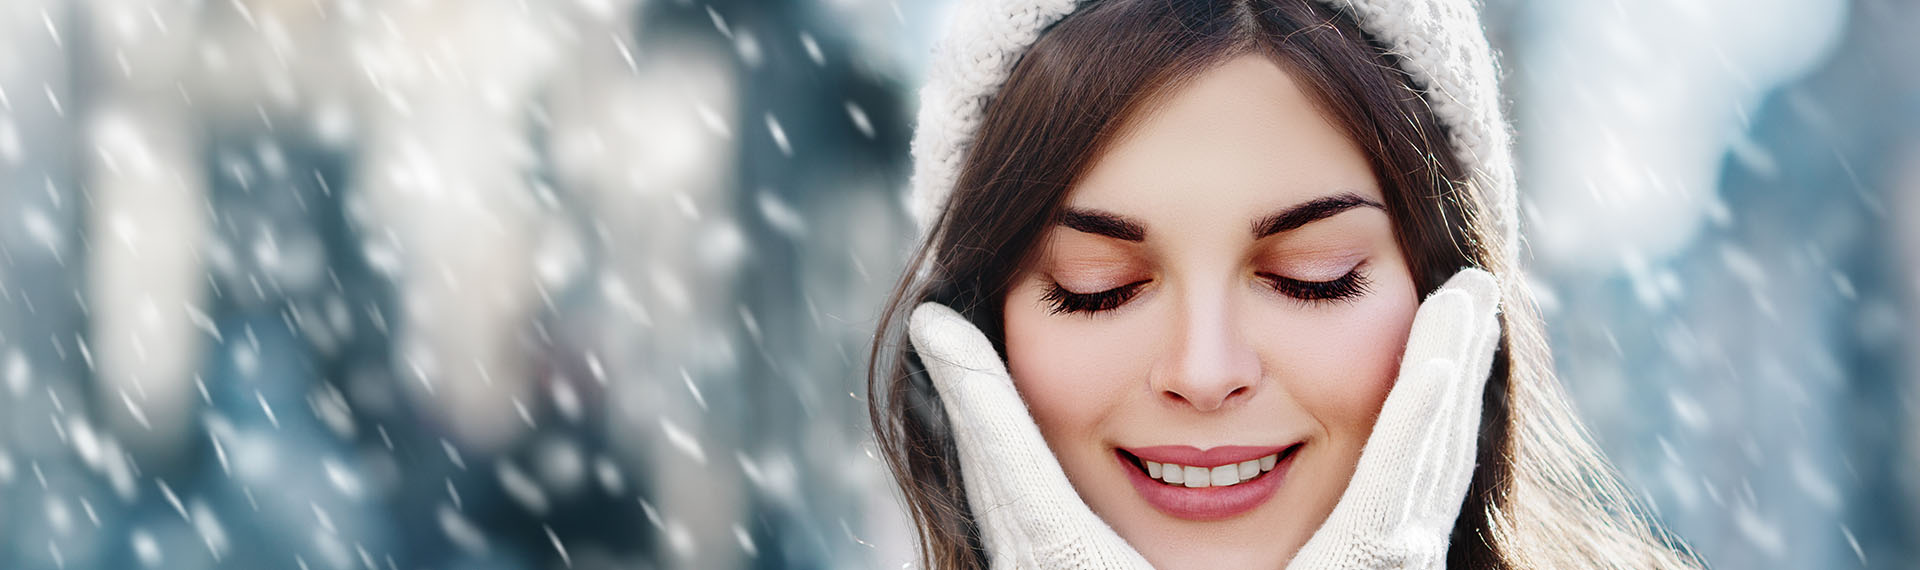 10 Tips To Keep Your Skin Soft And Glowing In Winter